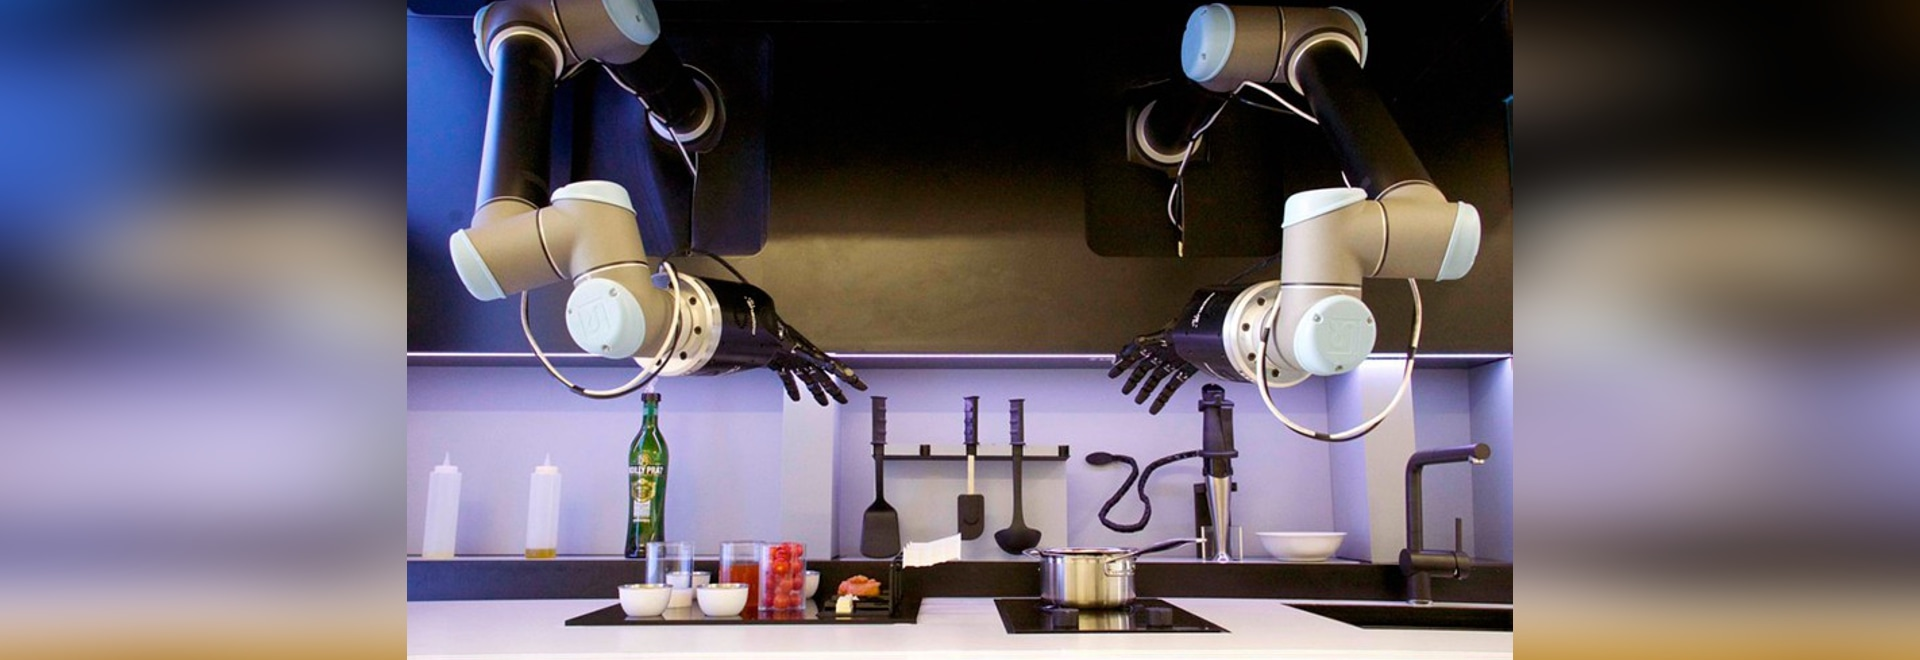 moley automated kitchen uses pair of robotic arms to prepare meals